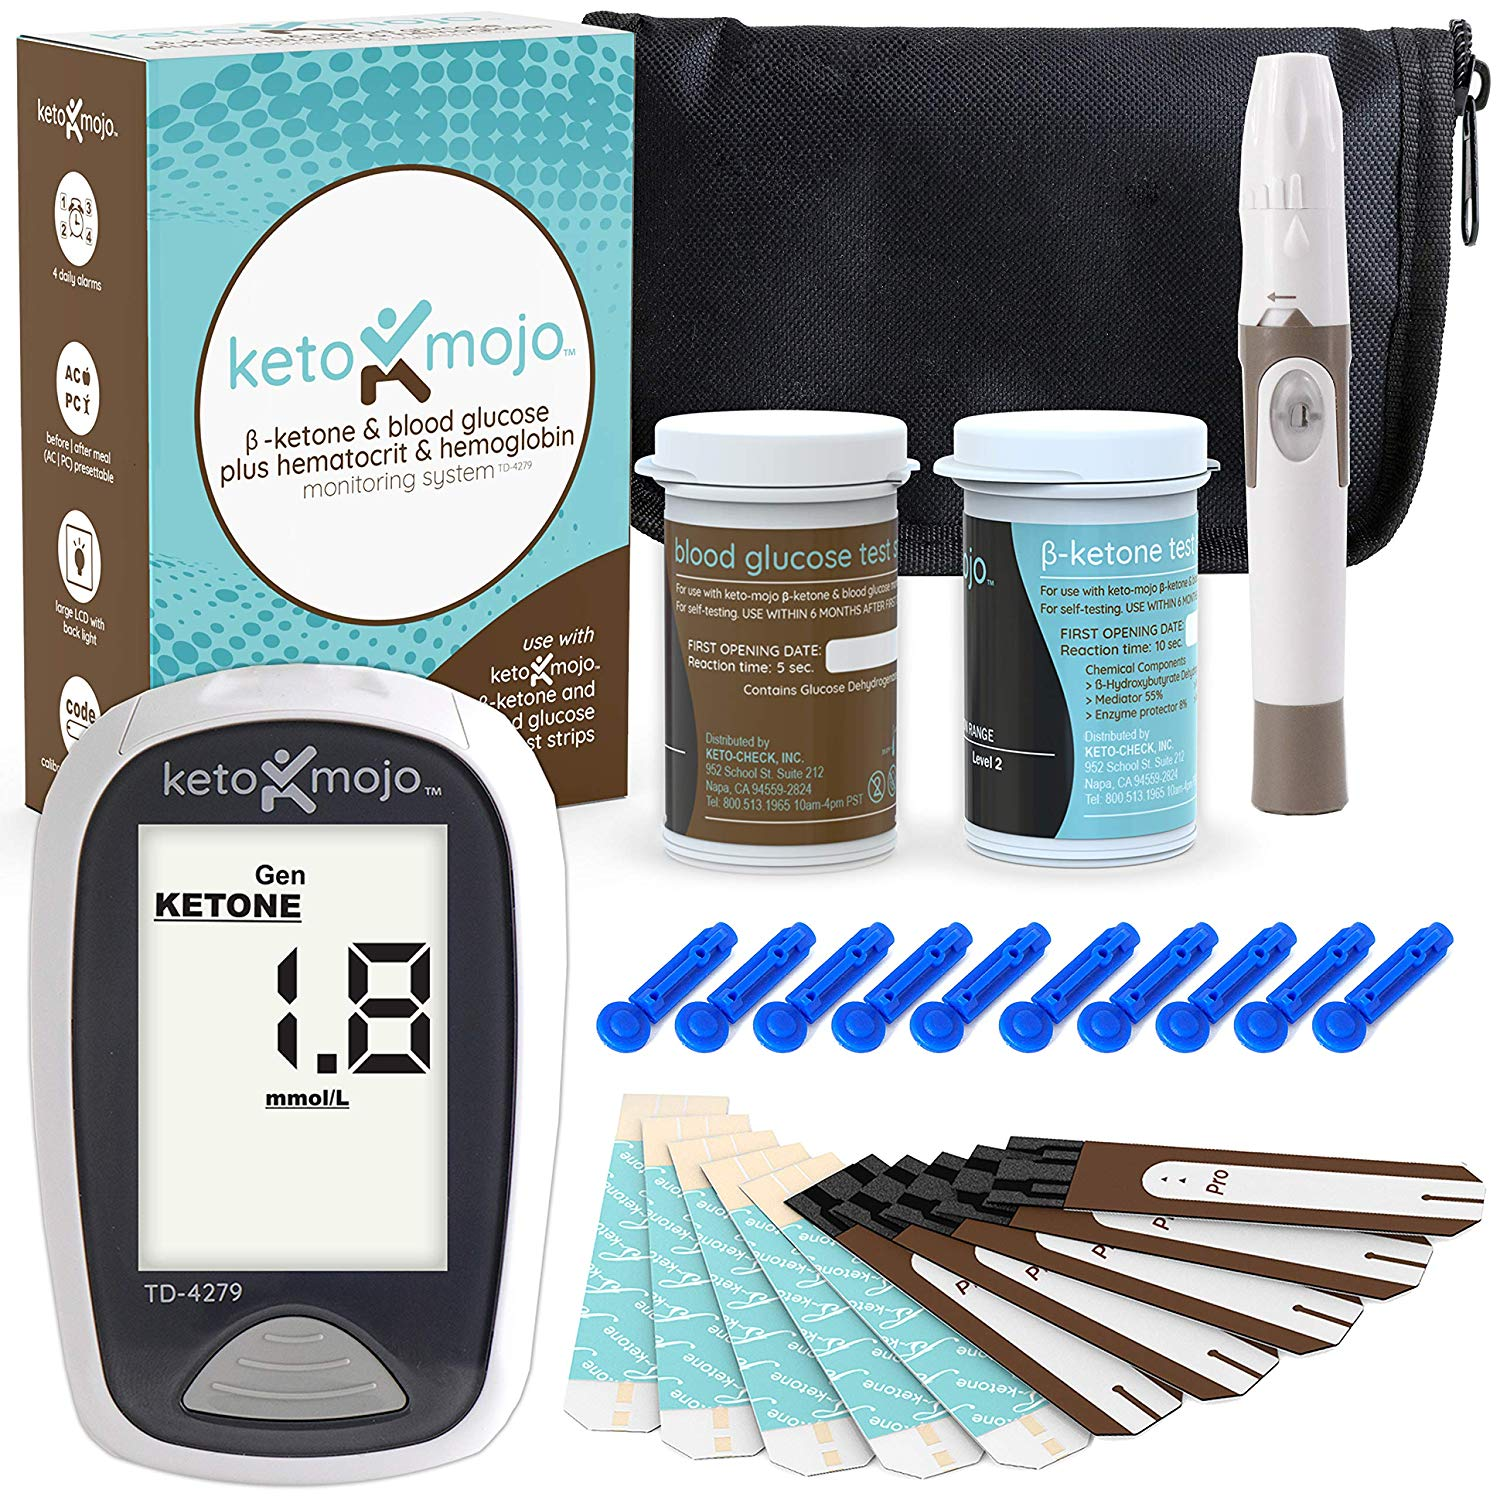 Review of - KETO-MOJO Blood Ketone and Glucose Testing Kit, Monitor Your Ketogenic Diet